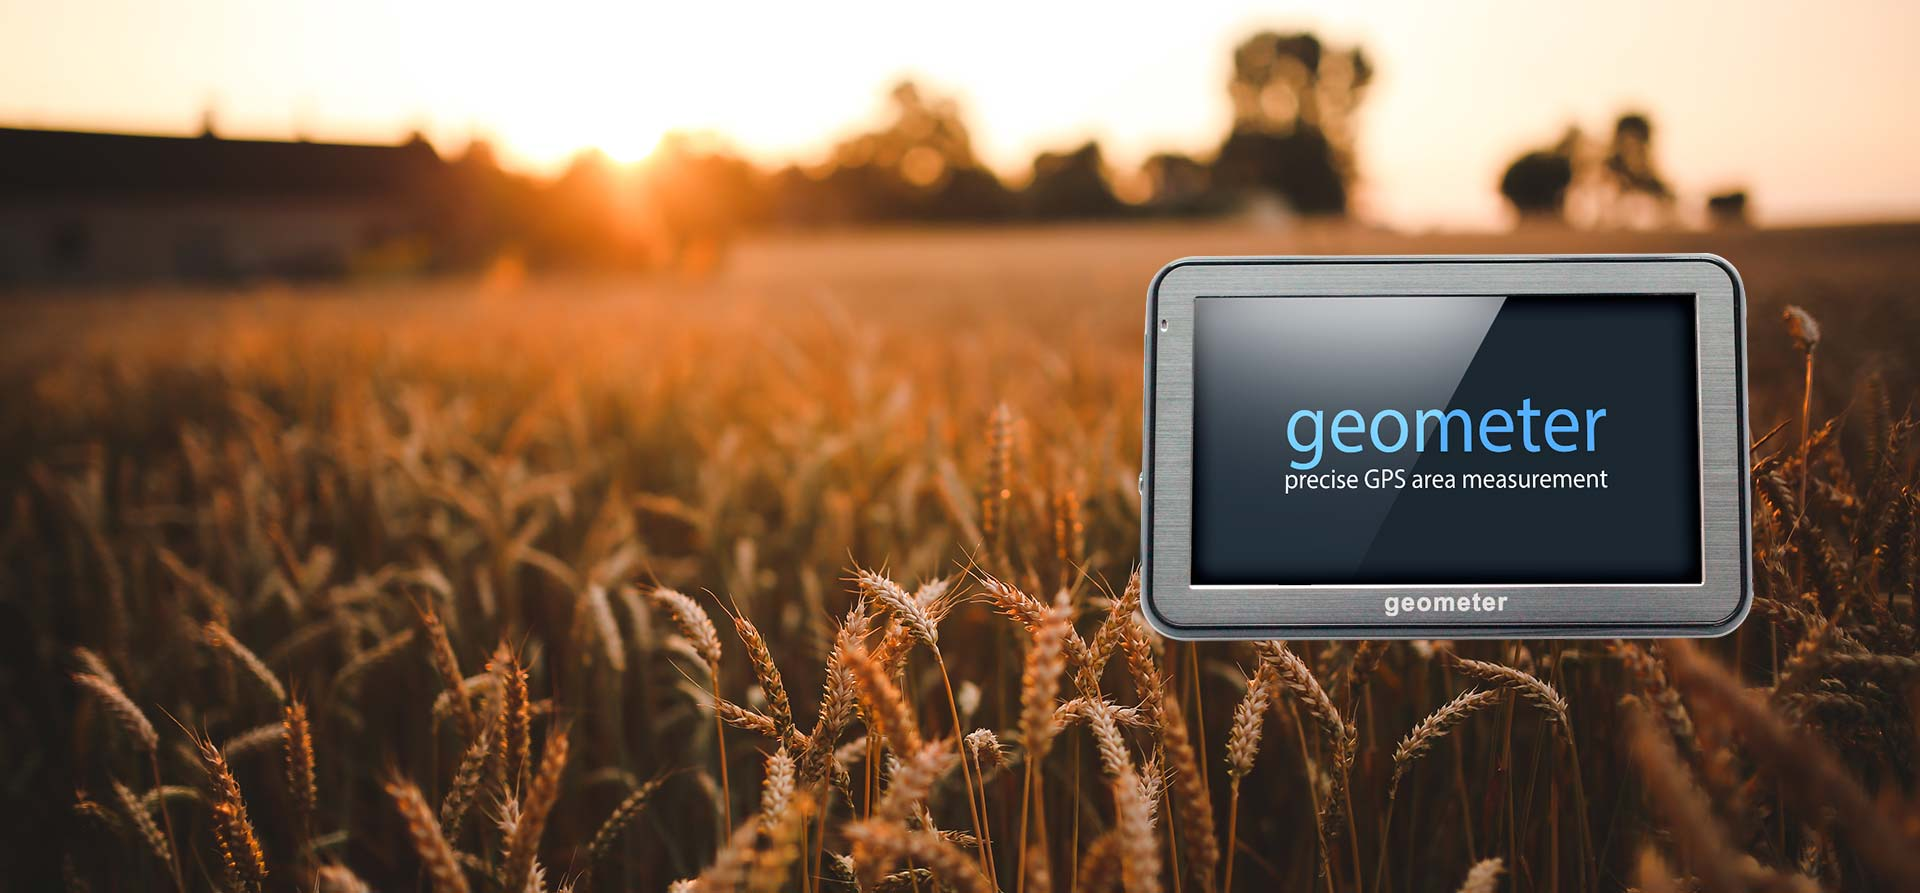 geometer gps - handheld gps device for measurement of agricultural fields, distances and perimeter. Measuring and management of the fields